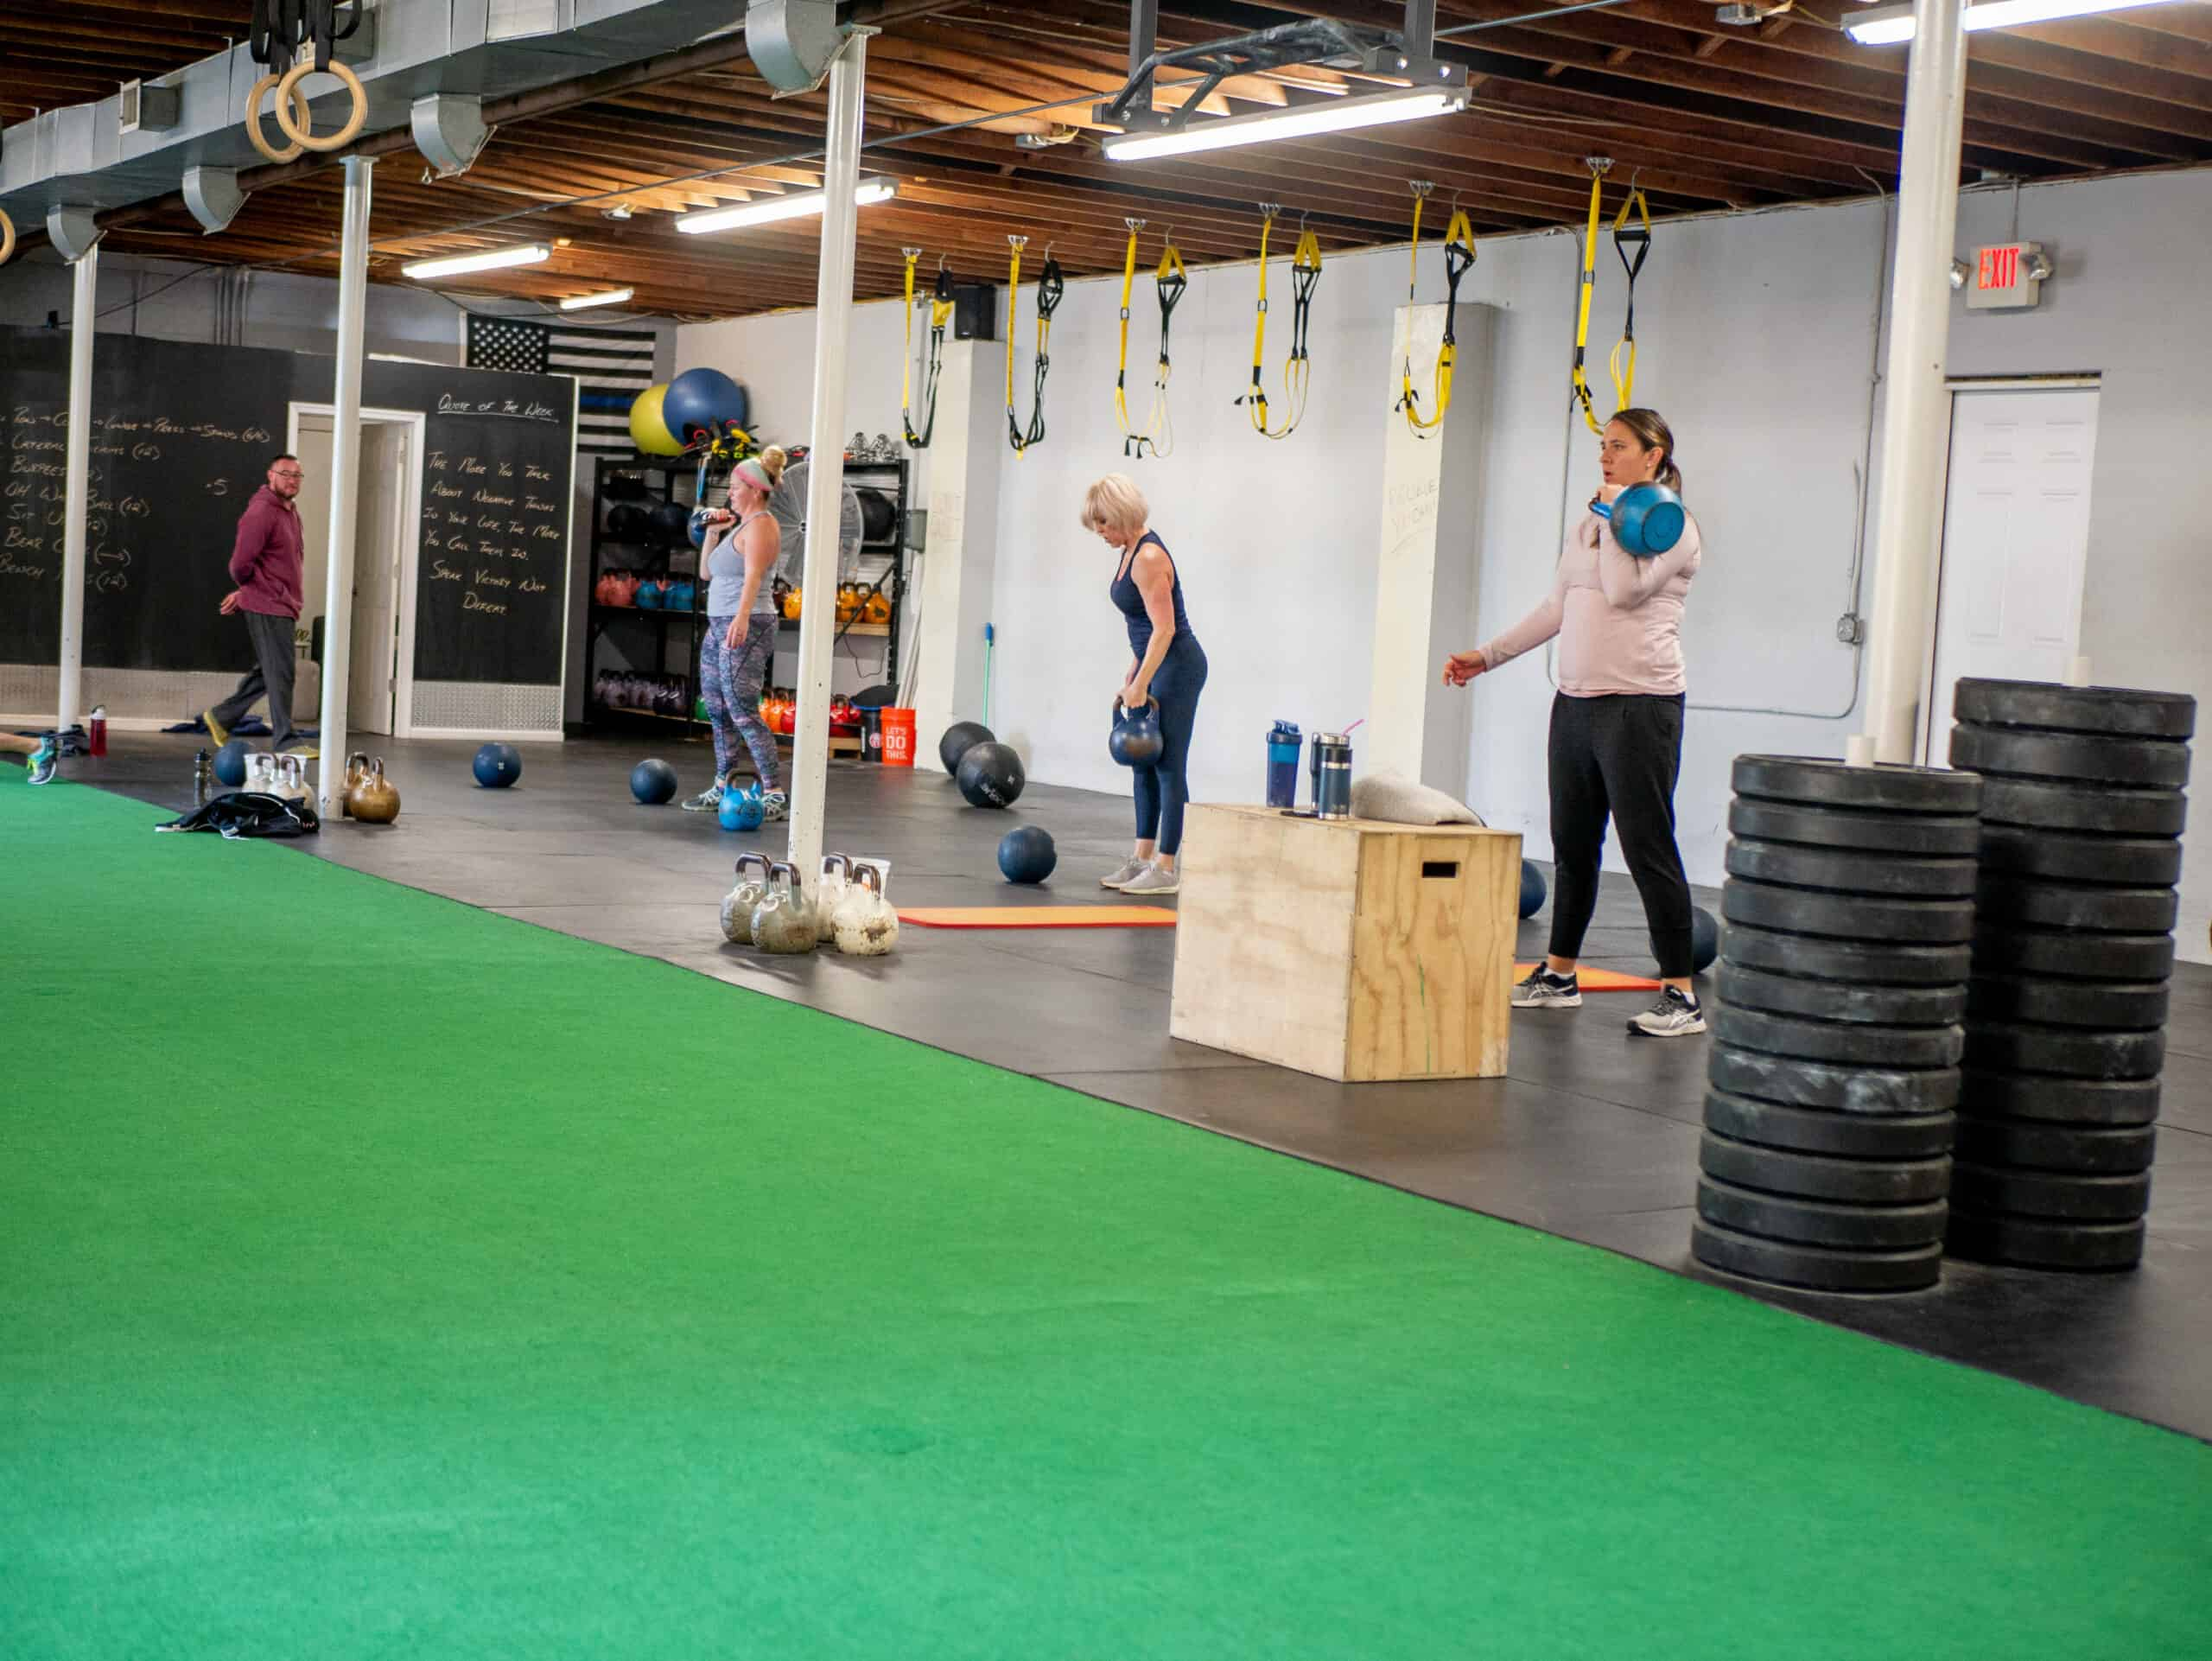 Spark Fitness team members training with kettlebells at the fitness center